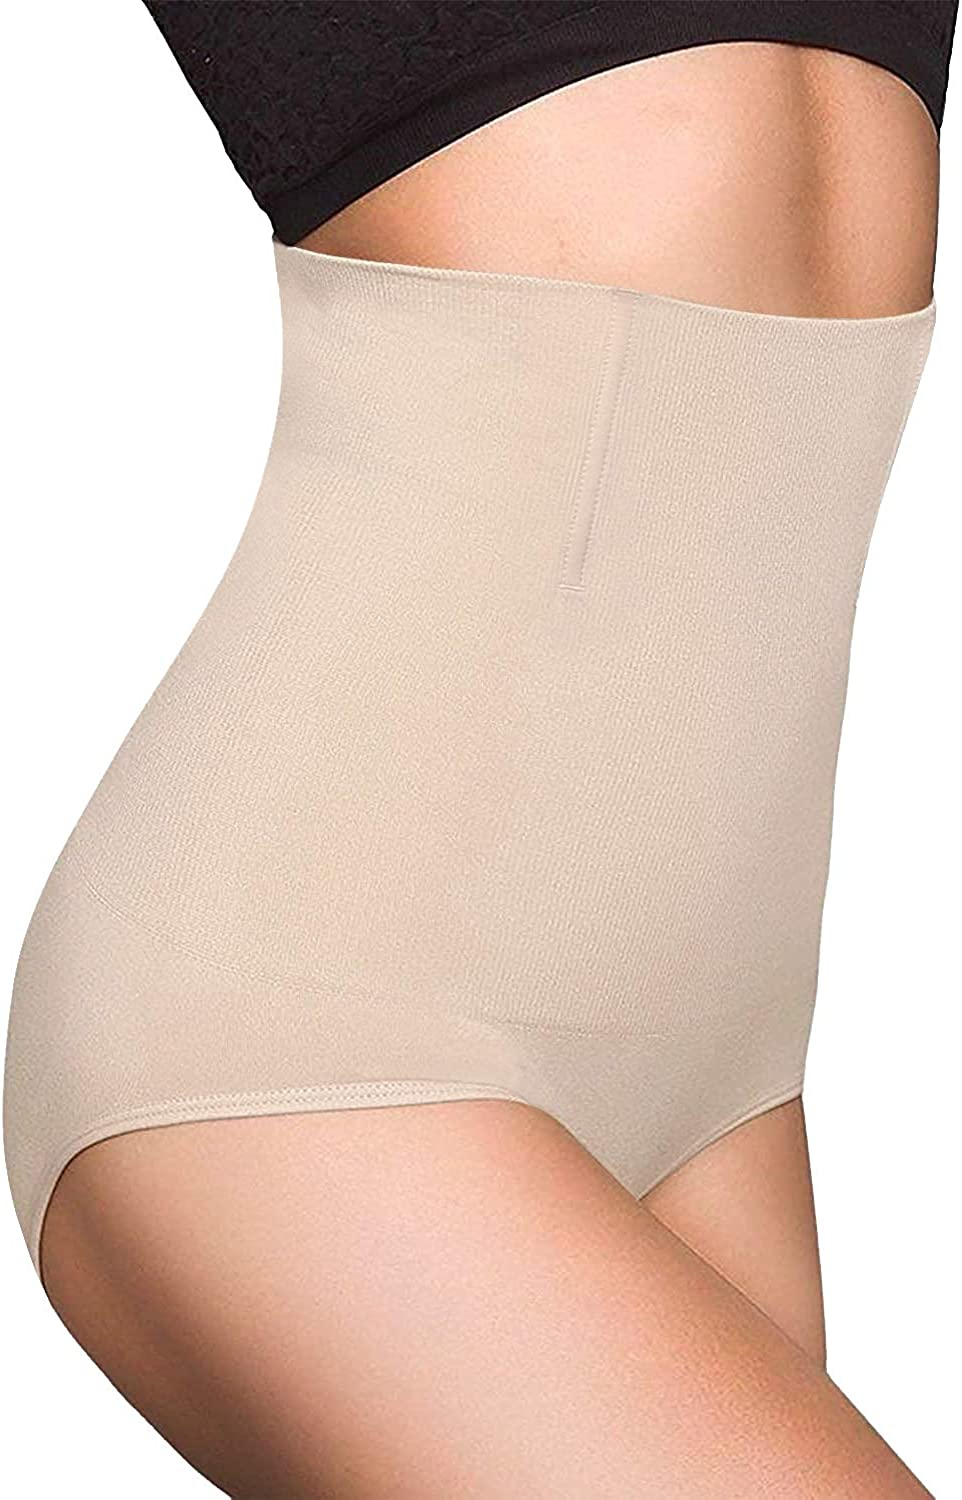 Details about  /SHAPER FAT TUMMY NEW WAIST FOR FULL SLIMMING CONTROL COVER TRIMMER BODY SLIM